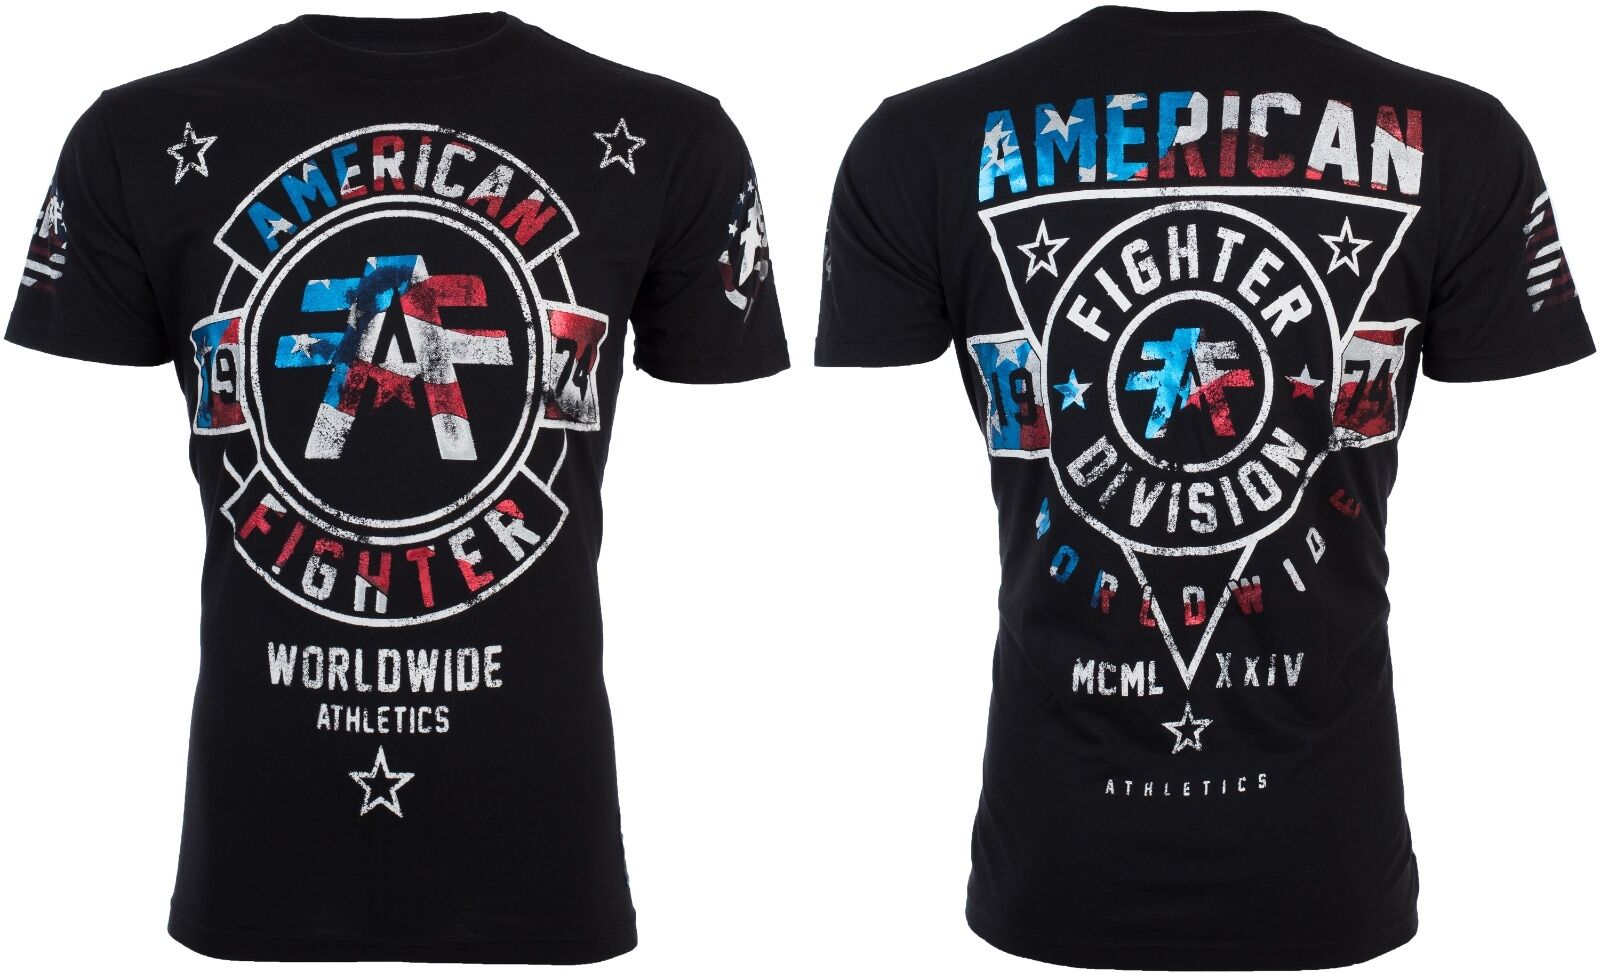 AMERICAN FIGHTER Mens T-Shirt SILVER LAKE PATRIOT Biker USA